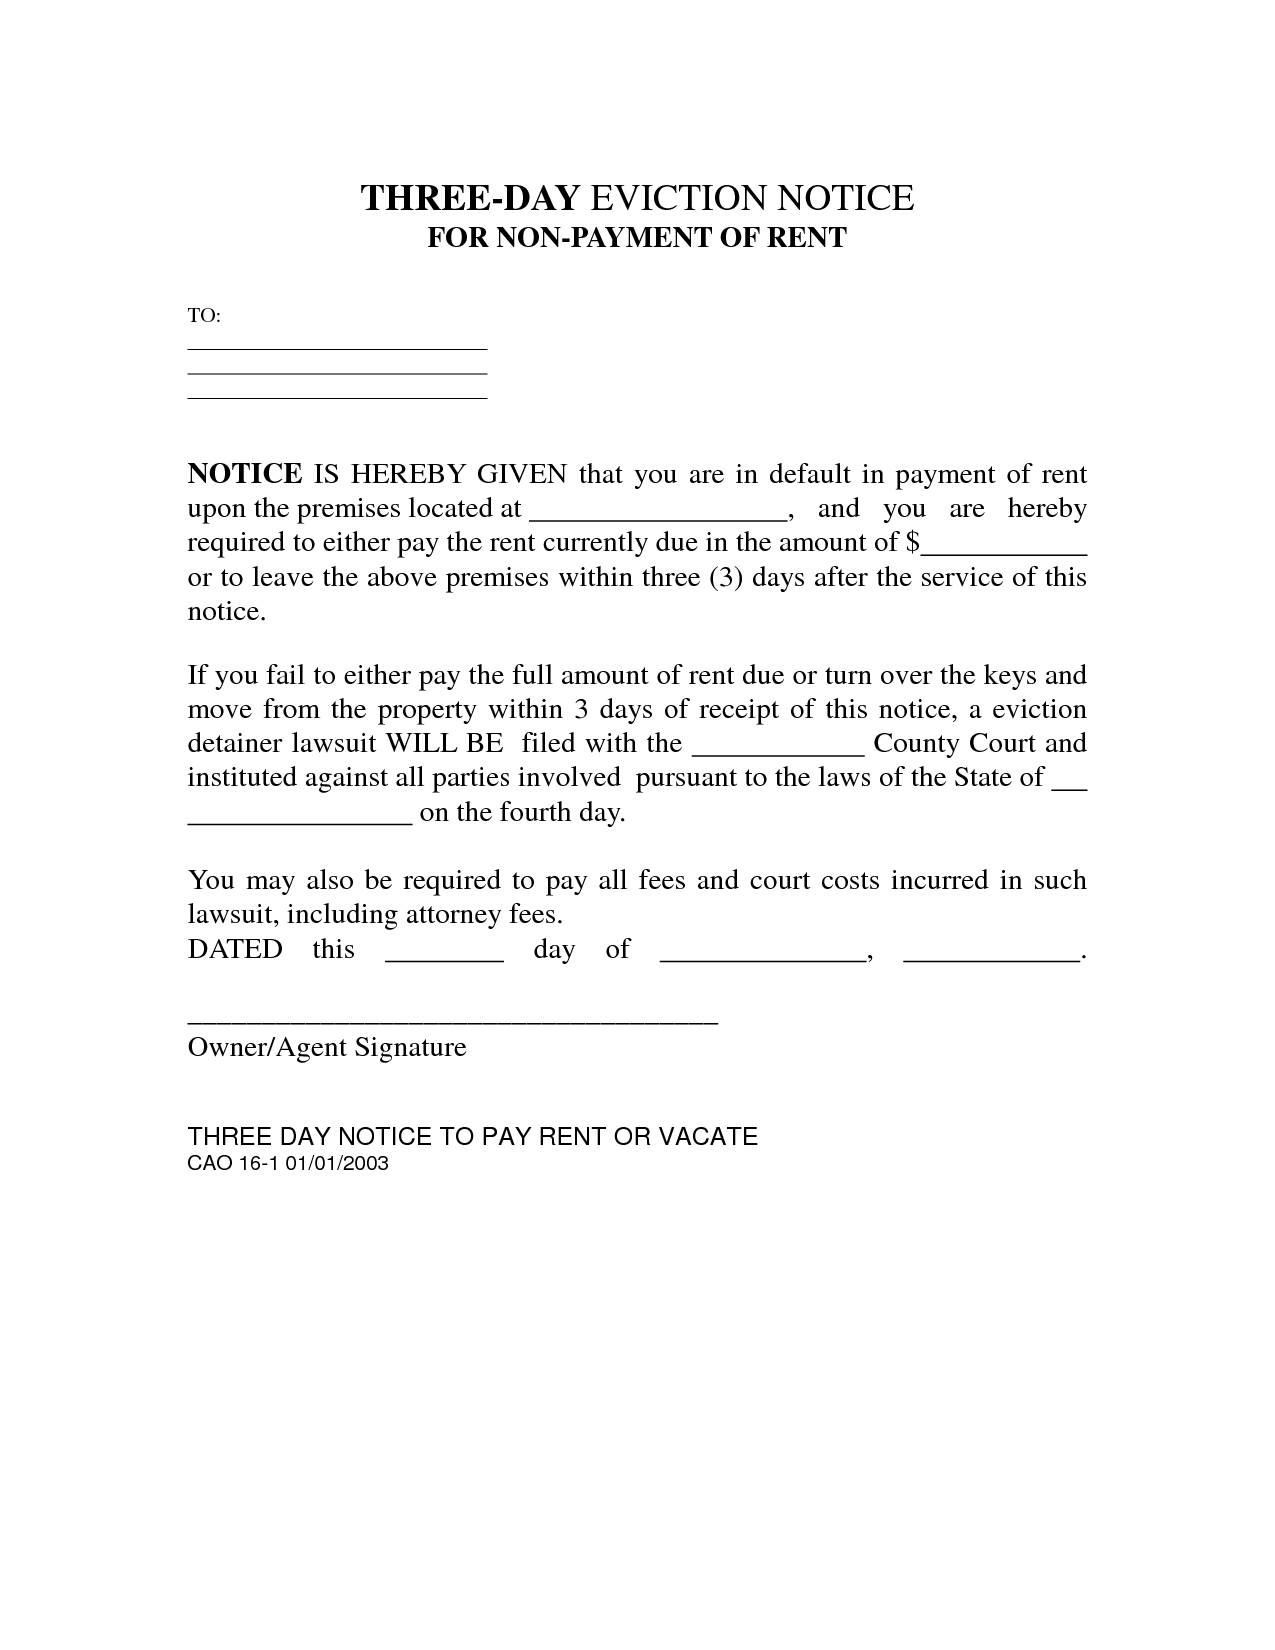 3 Day Notice Template. florida florida eviction form and. property ...